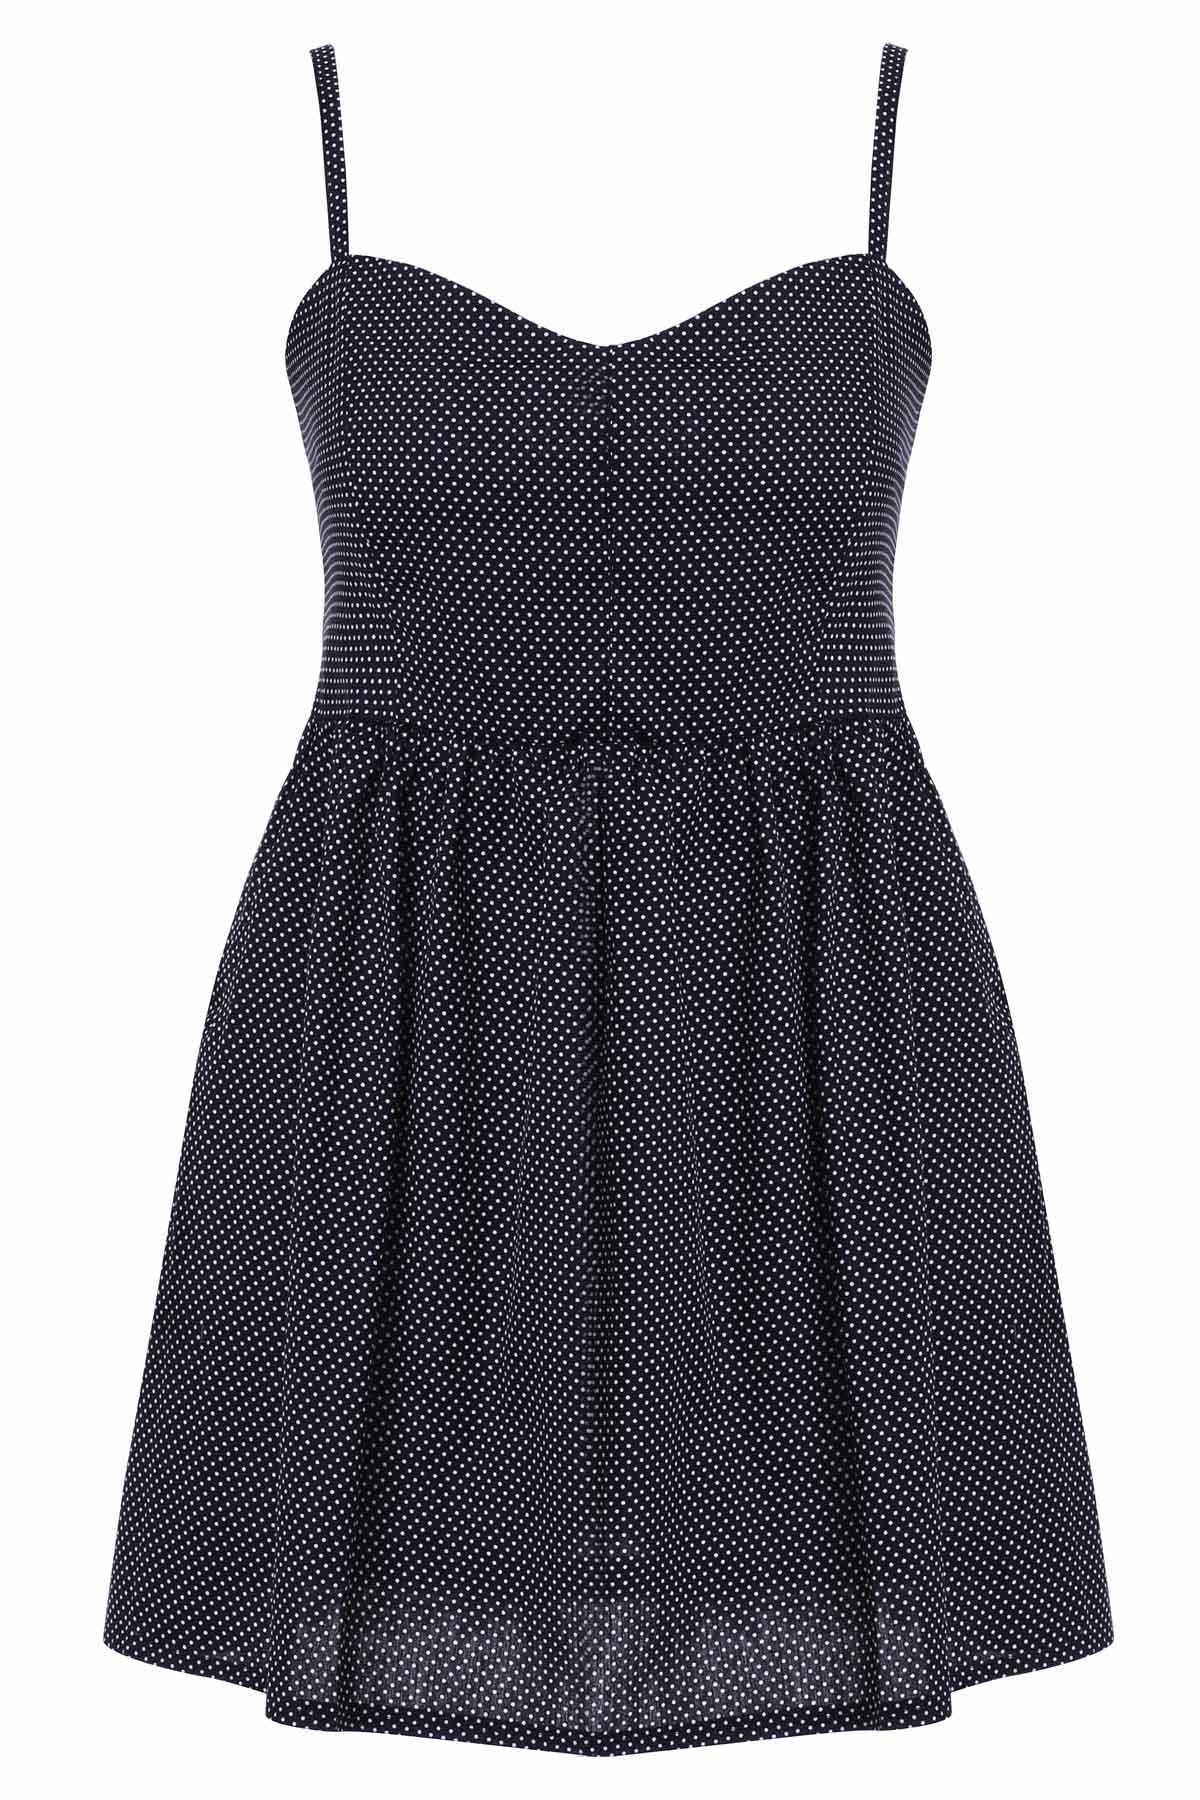 Chic Strappy Women's Sundress